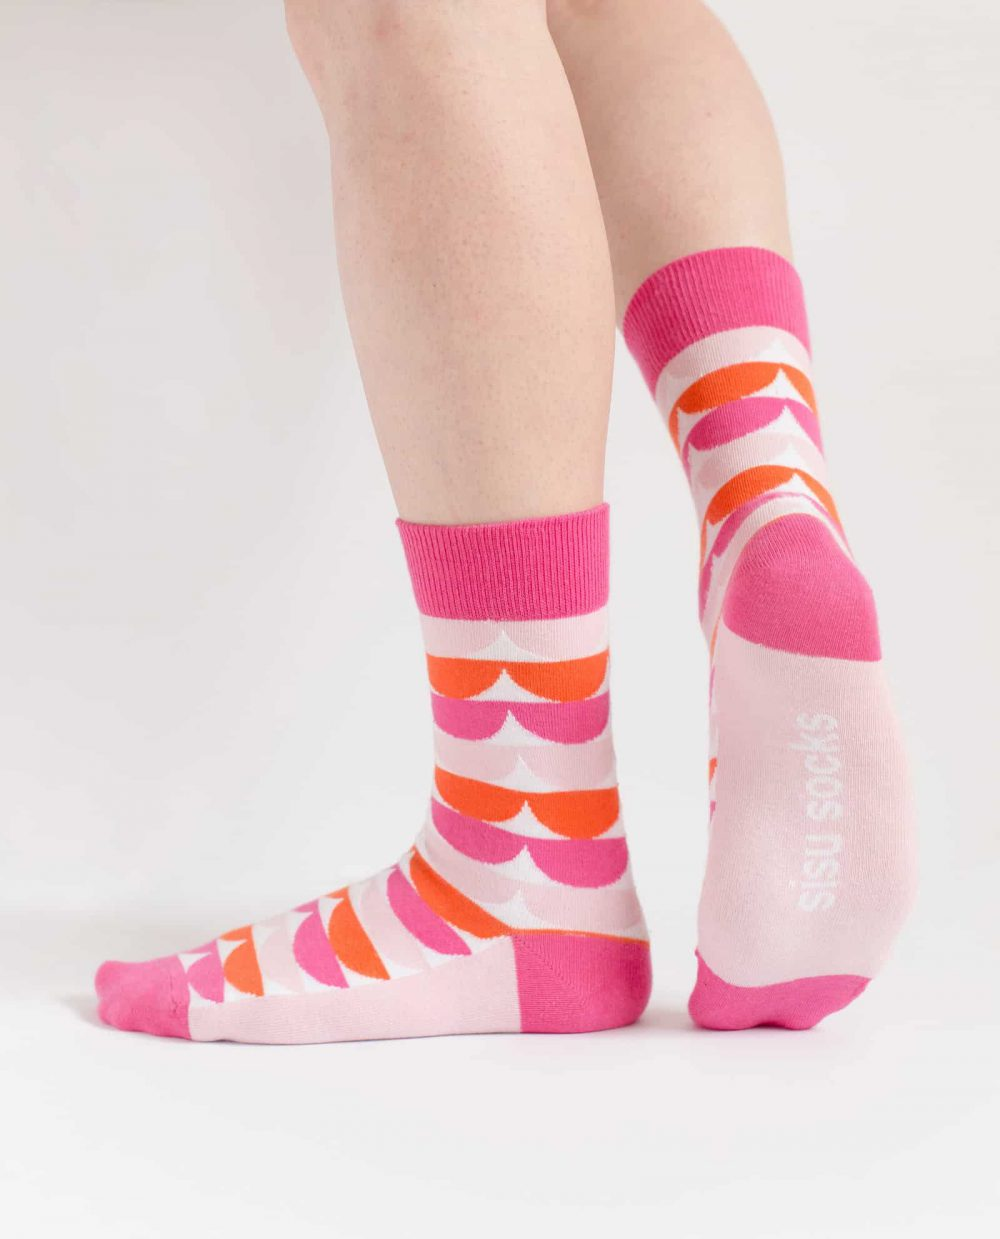 funny pink socks for women from sisu socks